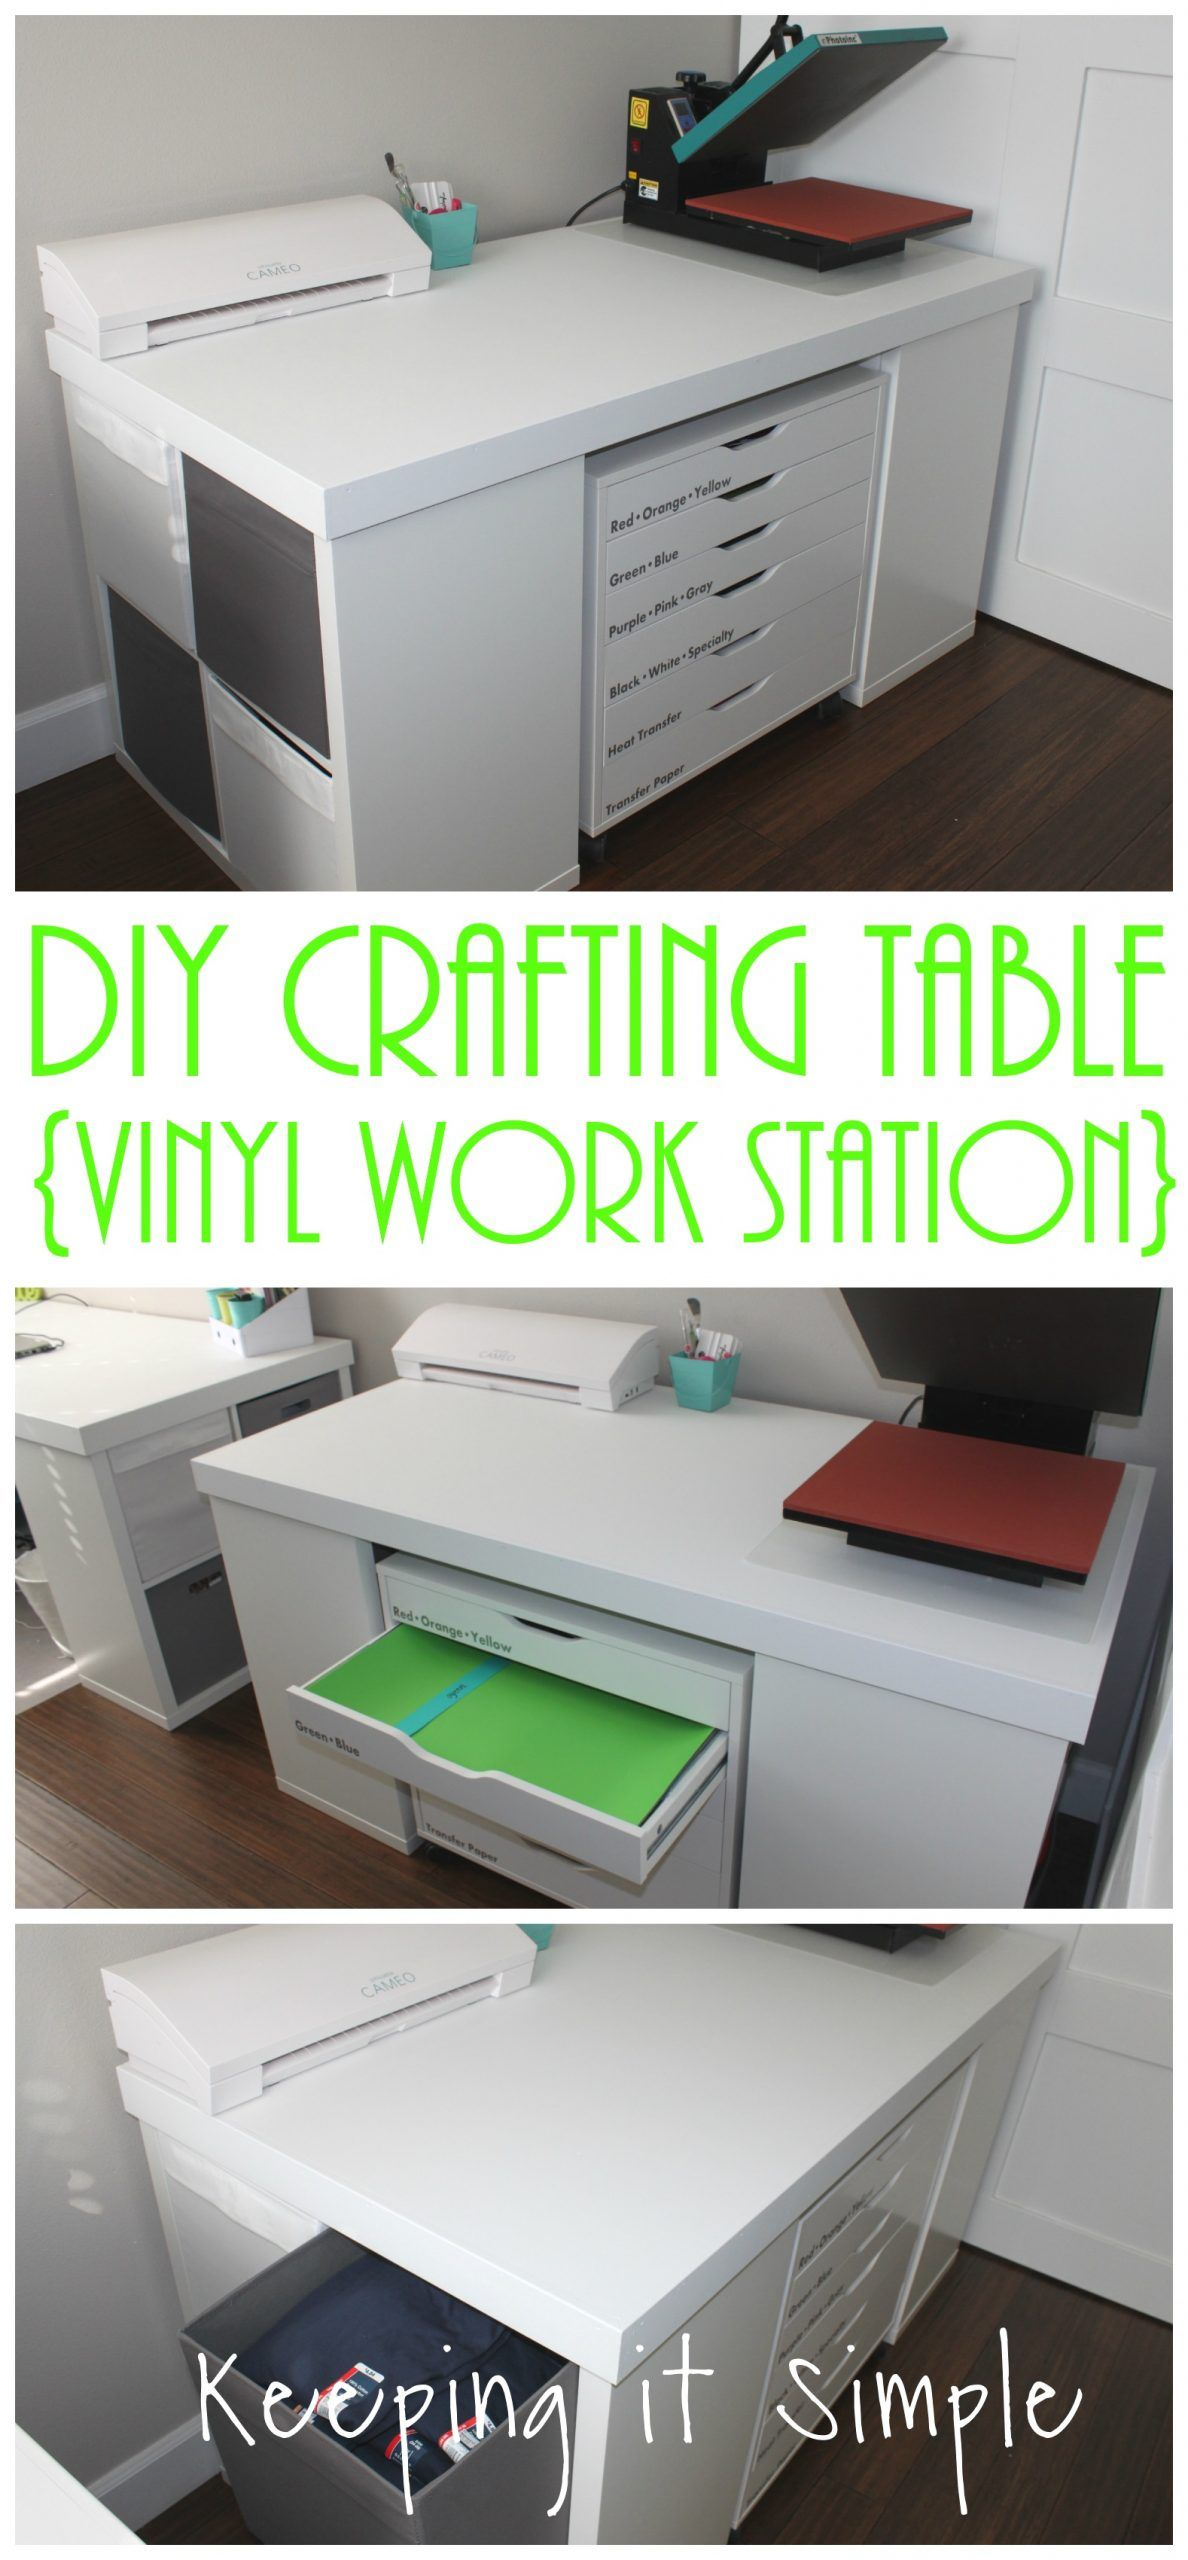 Diy Crafting Table Vinyl Work Station Keeping It Simple Craft Table Craft Tables With Storage Craft Room Design